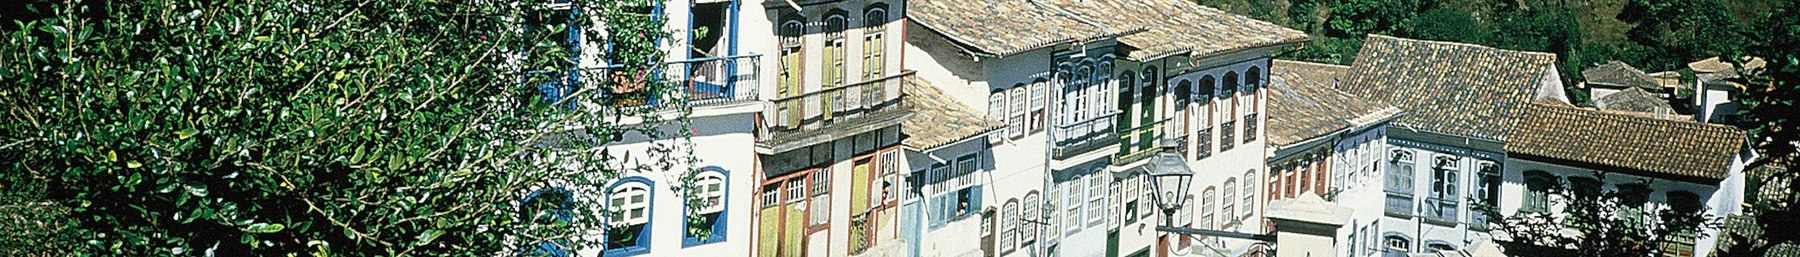 WV banner Diamantina old houses.jpg